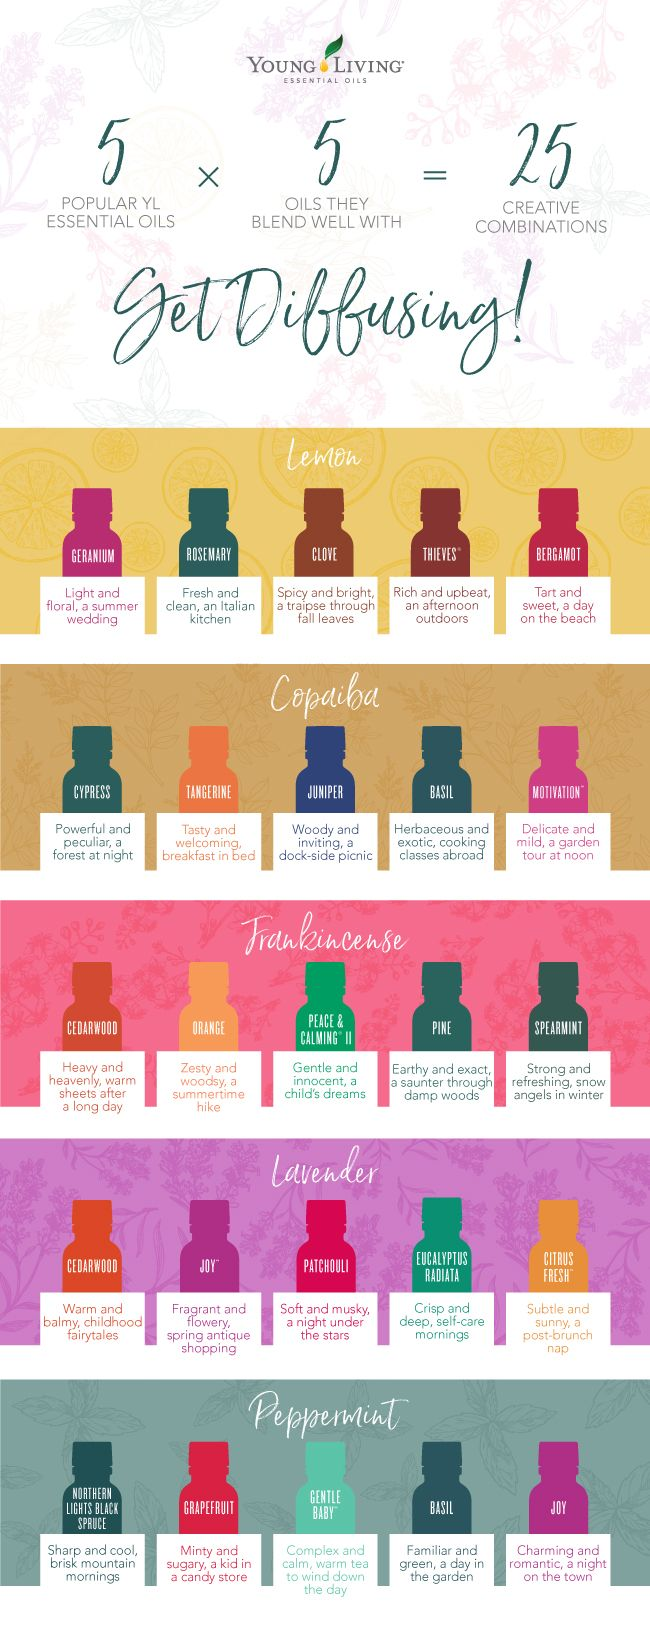 Pin On 12 Young Living Diffuser Recipes